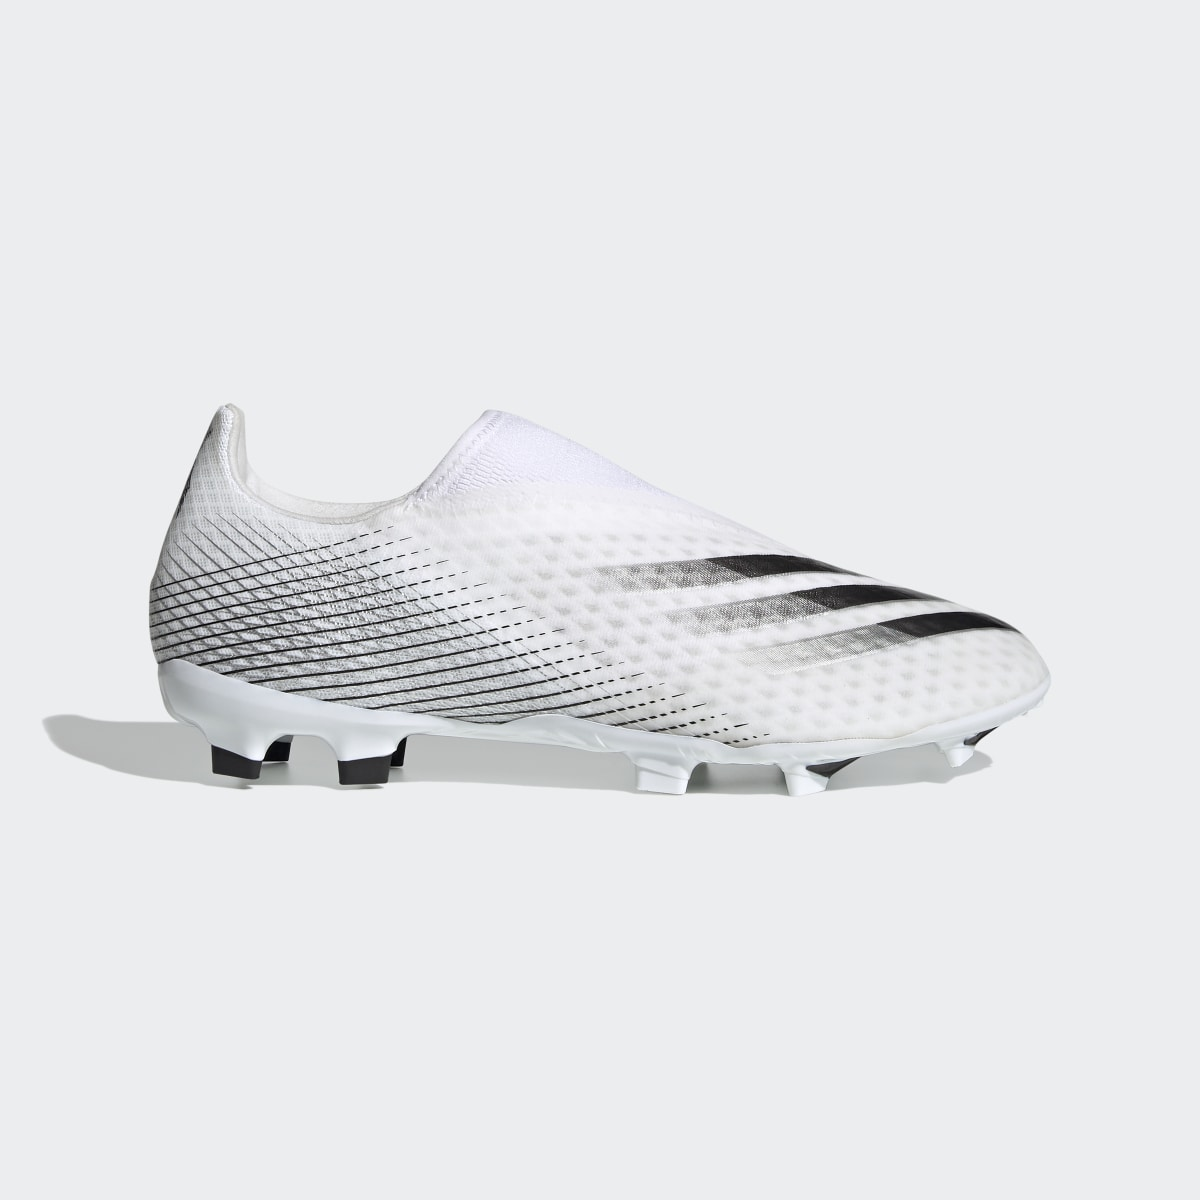 X Ghosted.3 Laceless Firm Ground Soccer Cleats